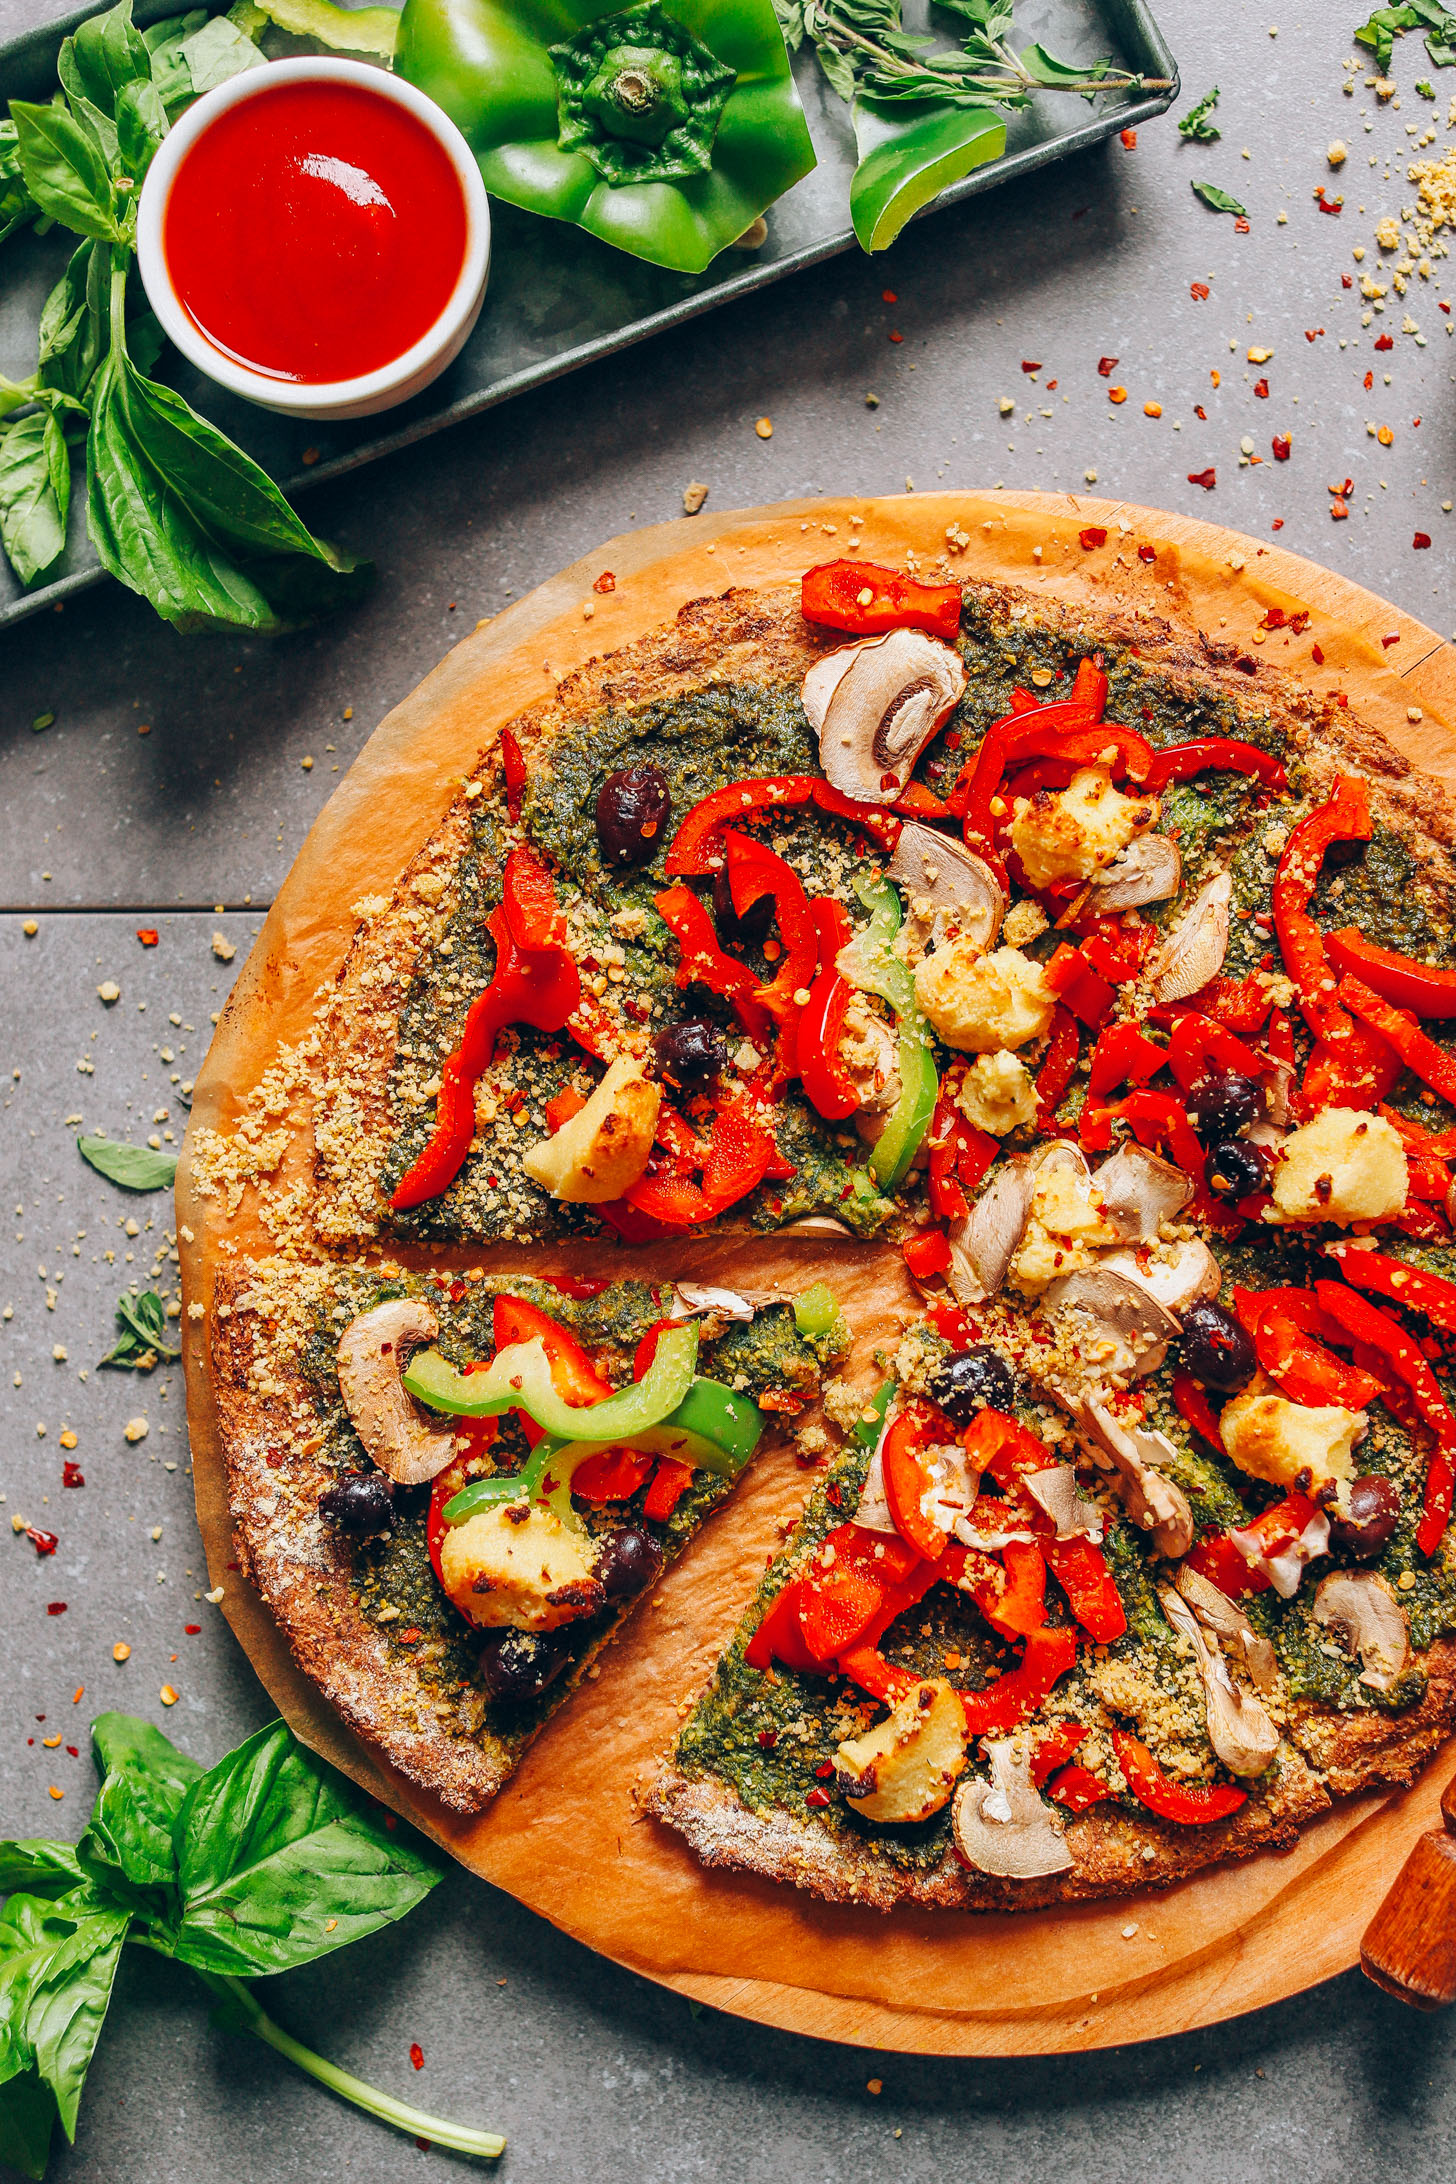 Freshly sliced, veggie-loaded pizza made with our vegan Gluten-Free Cauliflower Pizza Crust recipe